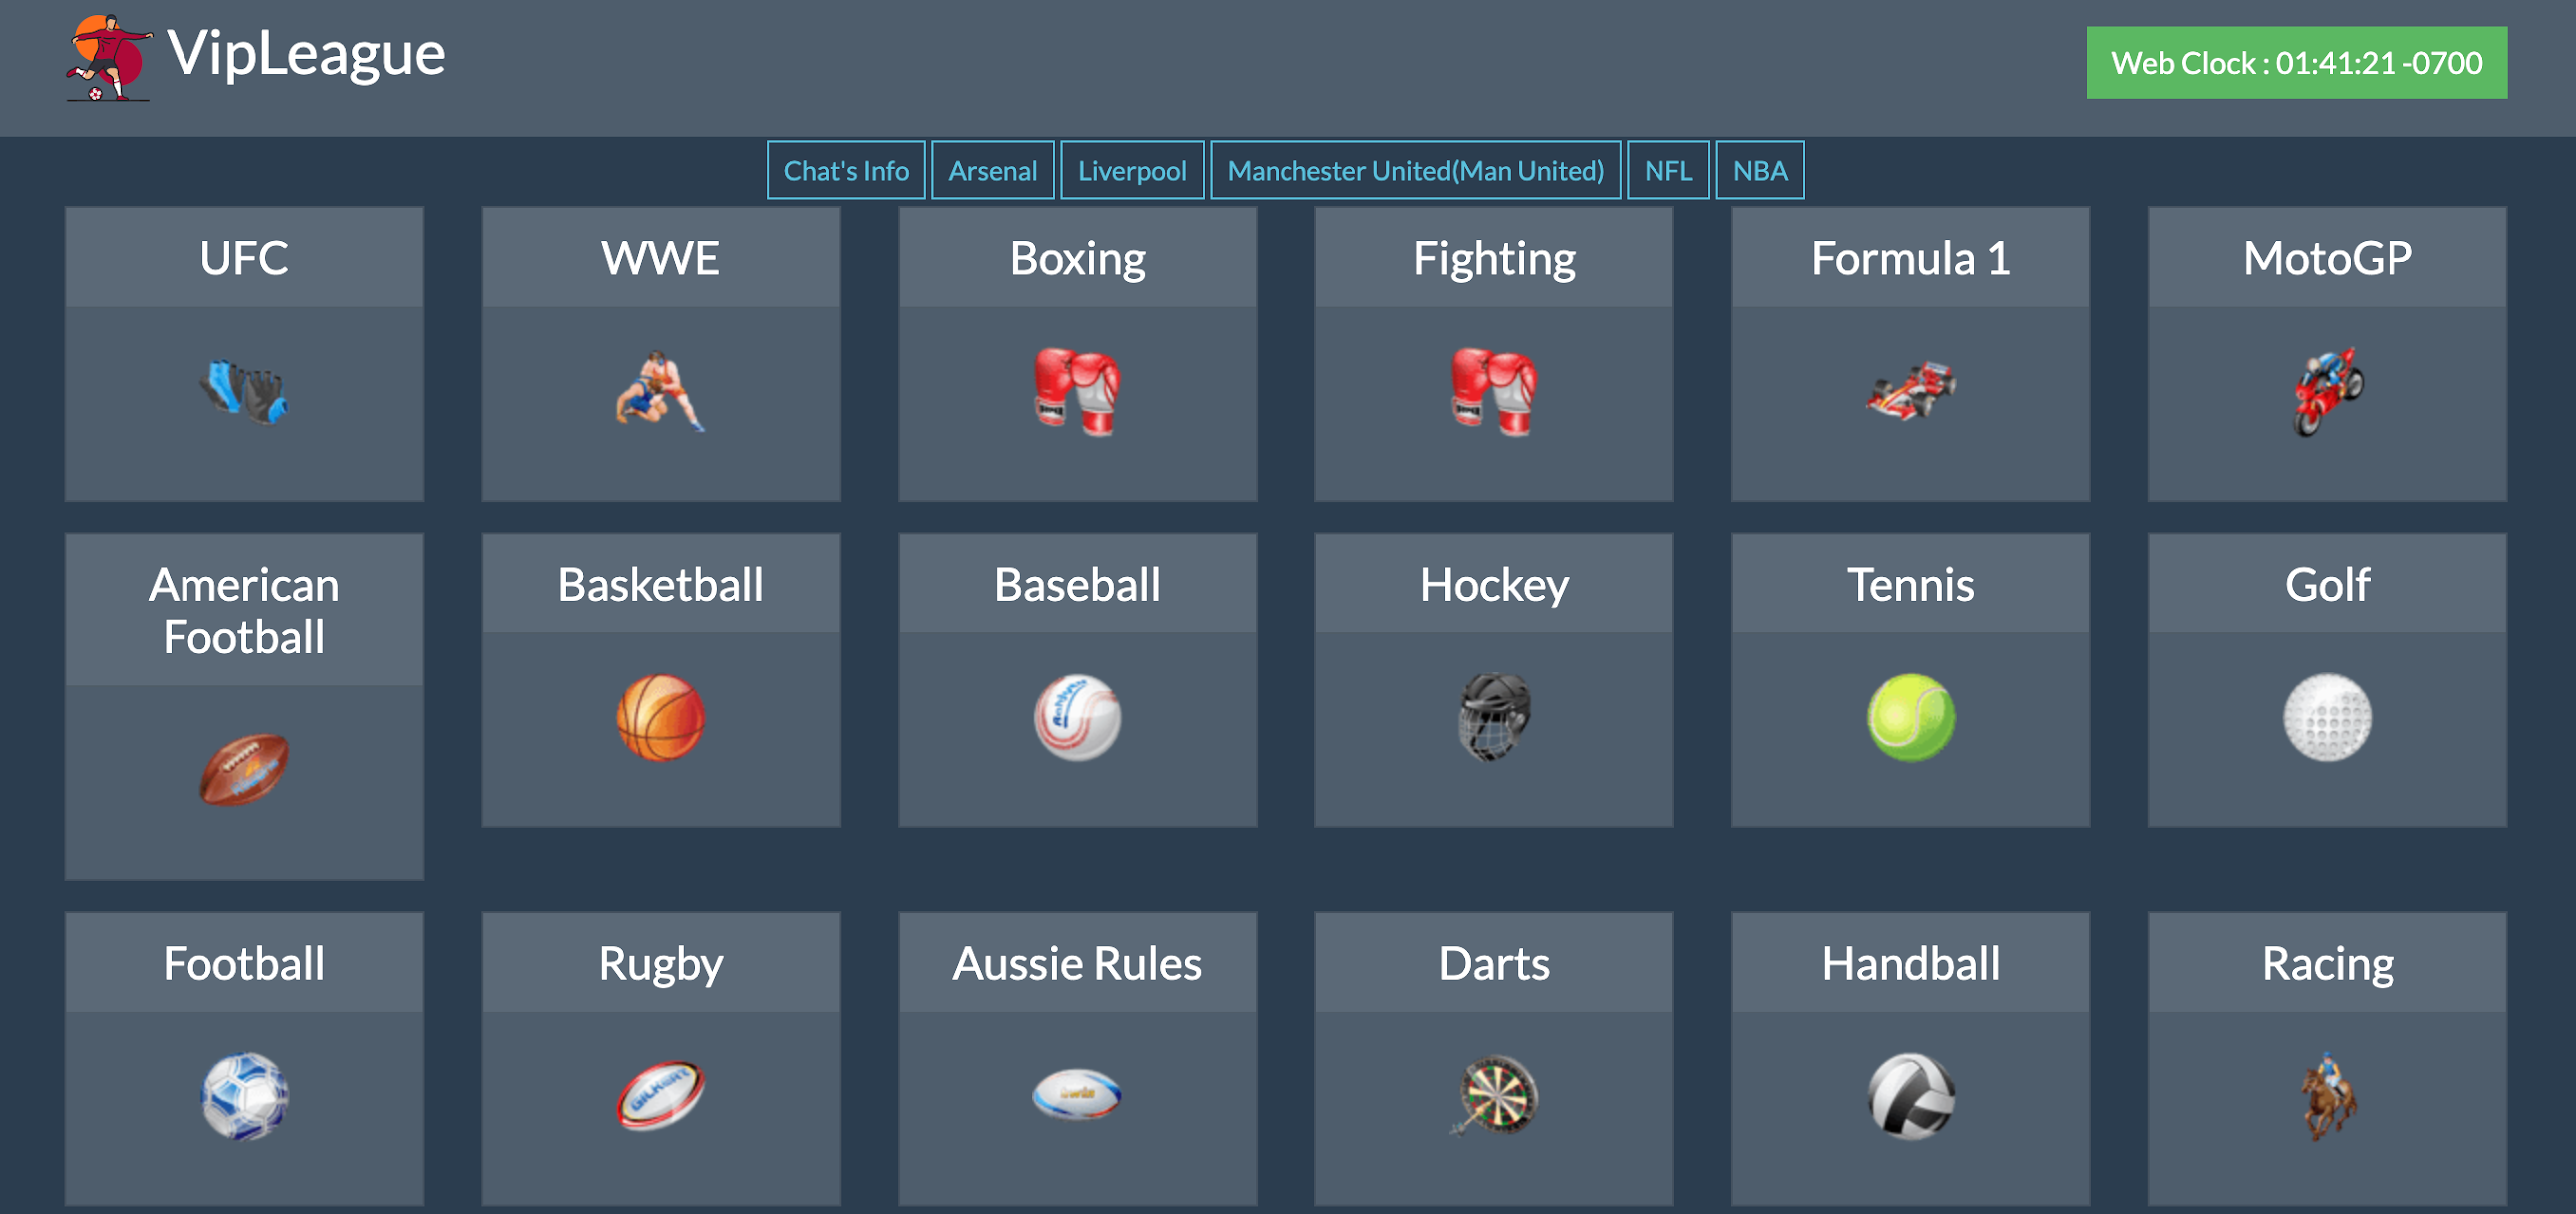 VIPLeague free live sports streaming  website